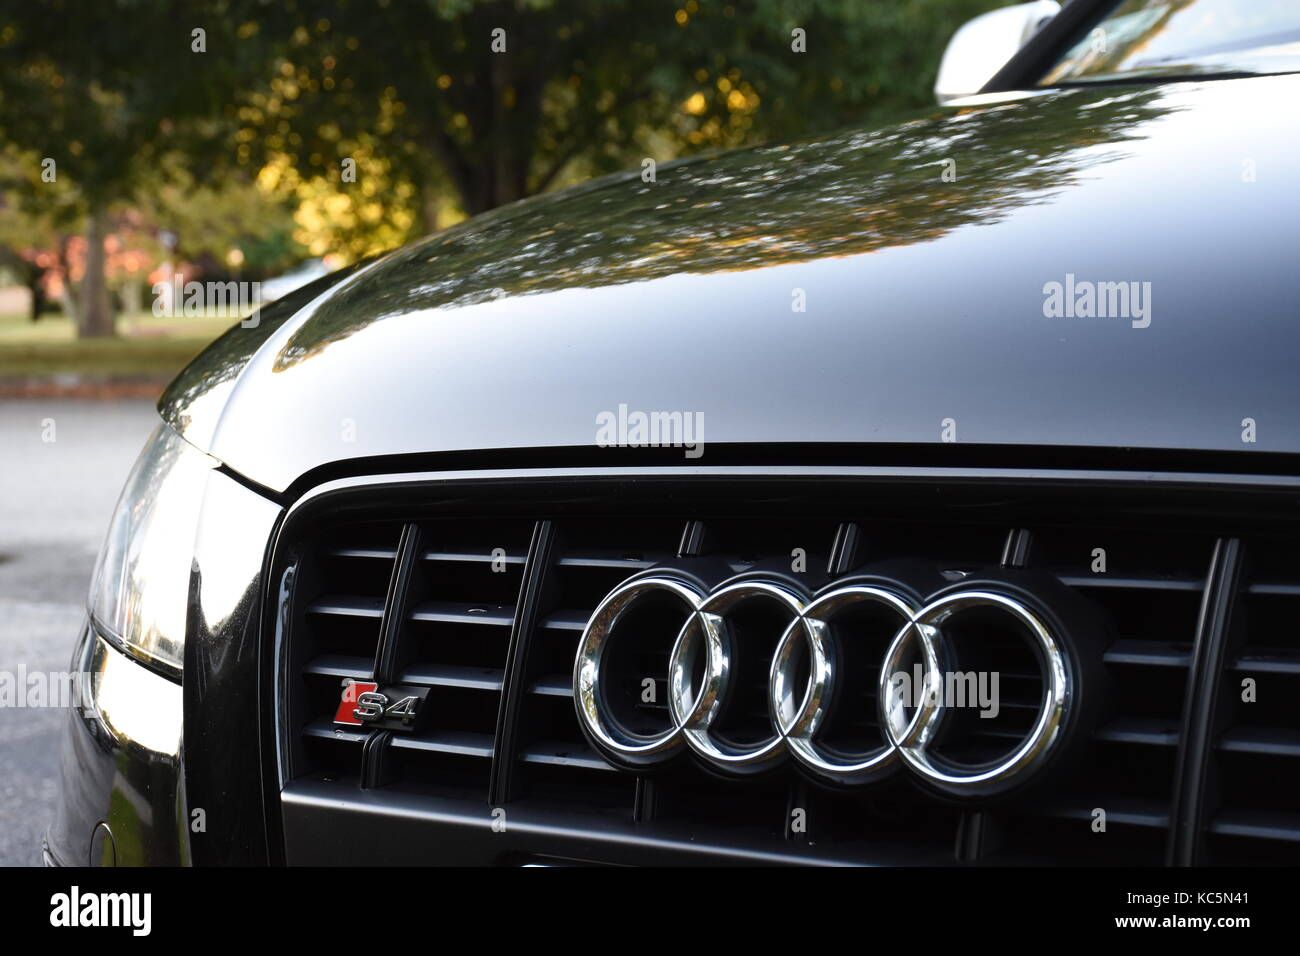 Prestige Car Stock Photos Amp Prestige Car Stock Images Alamy